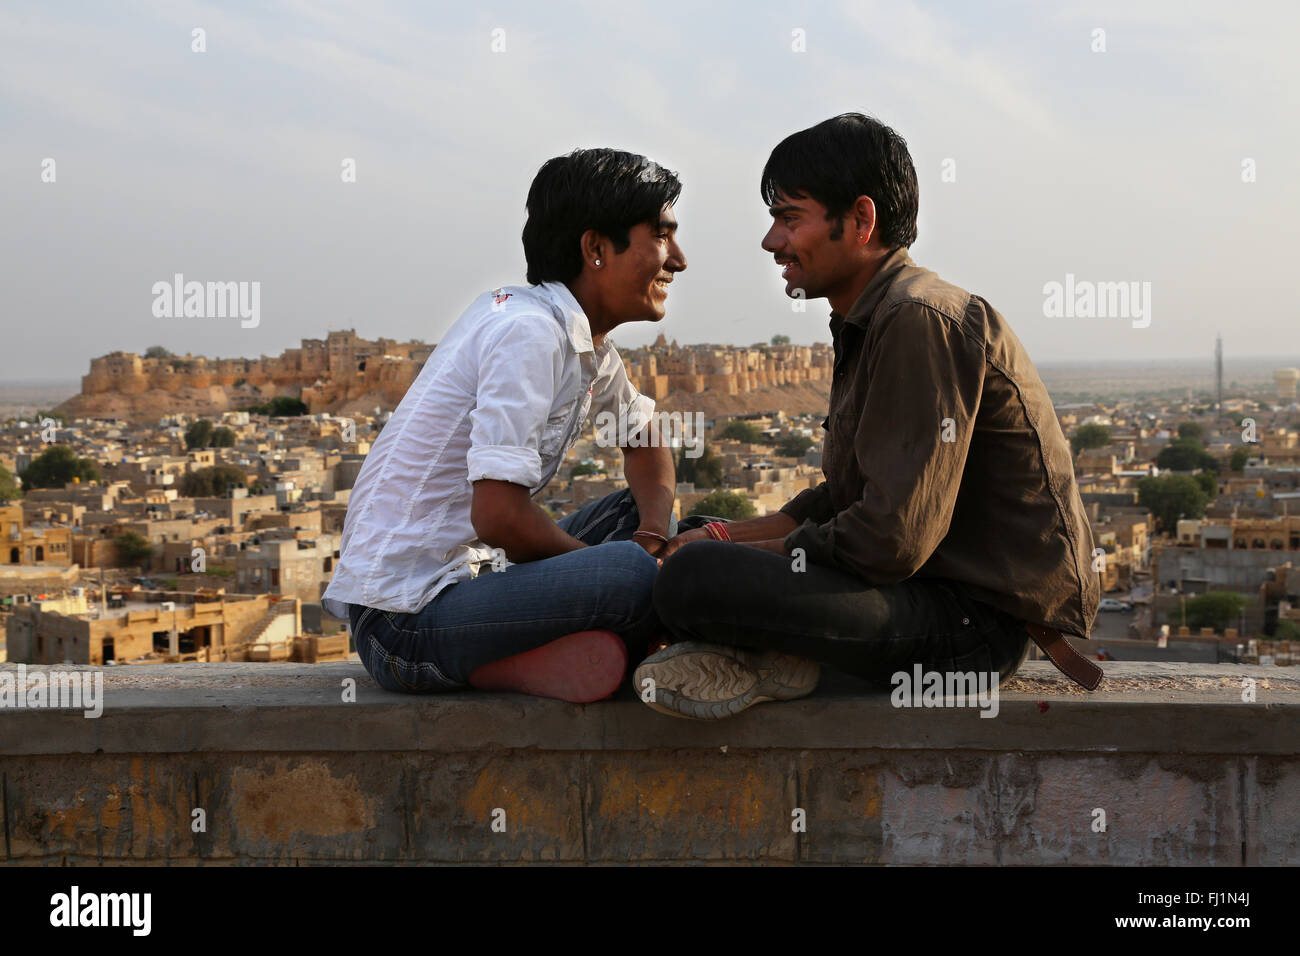 Two men are looking at each other in Jaisalmer , India - Stock Image